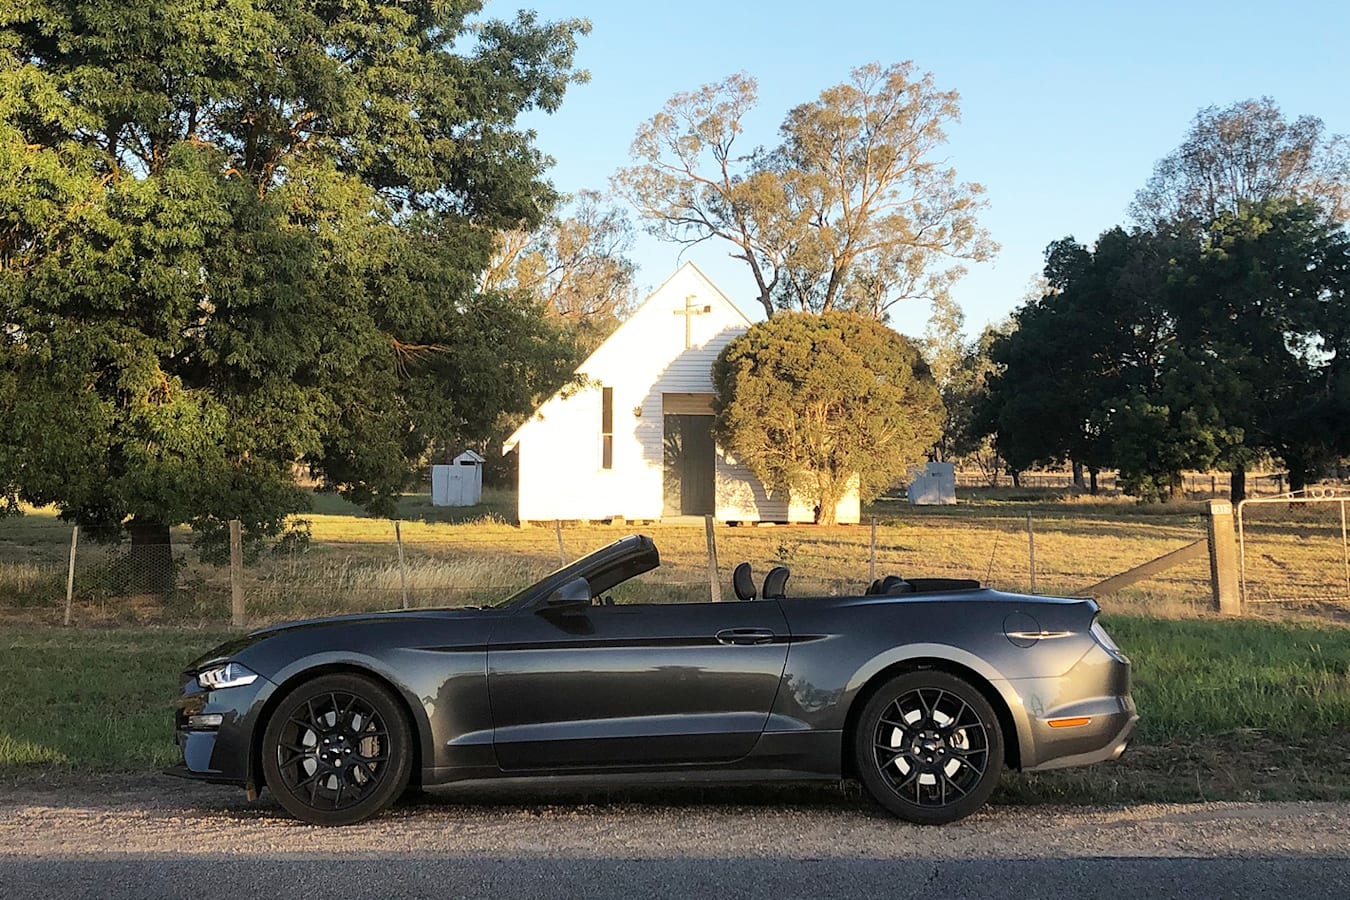 Ford Mustang Convertible Side On Jpg